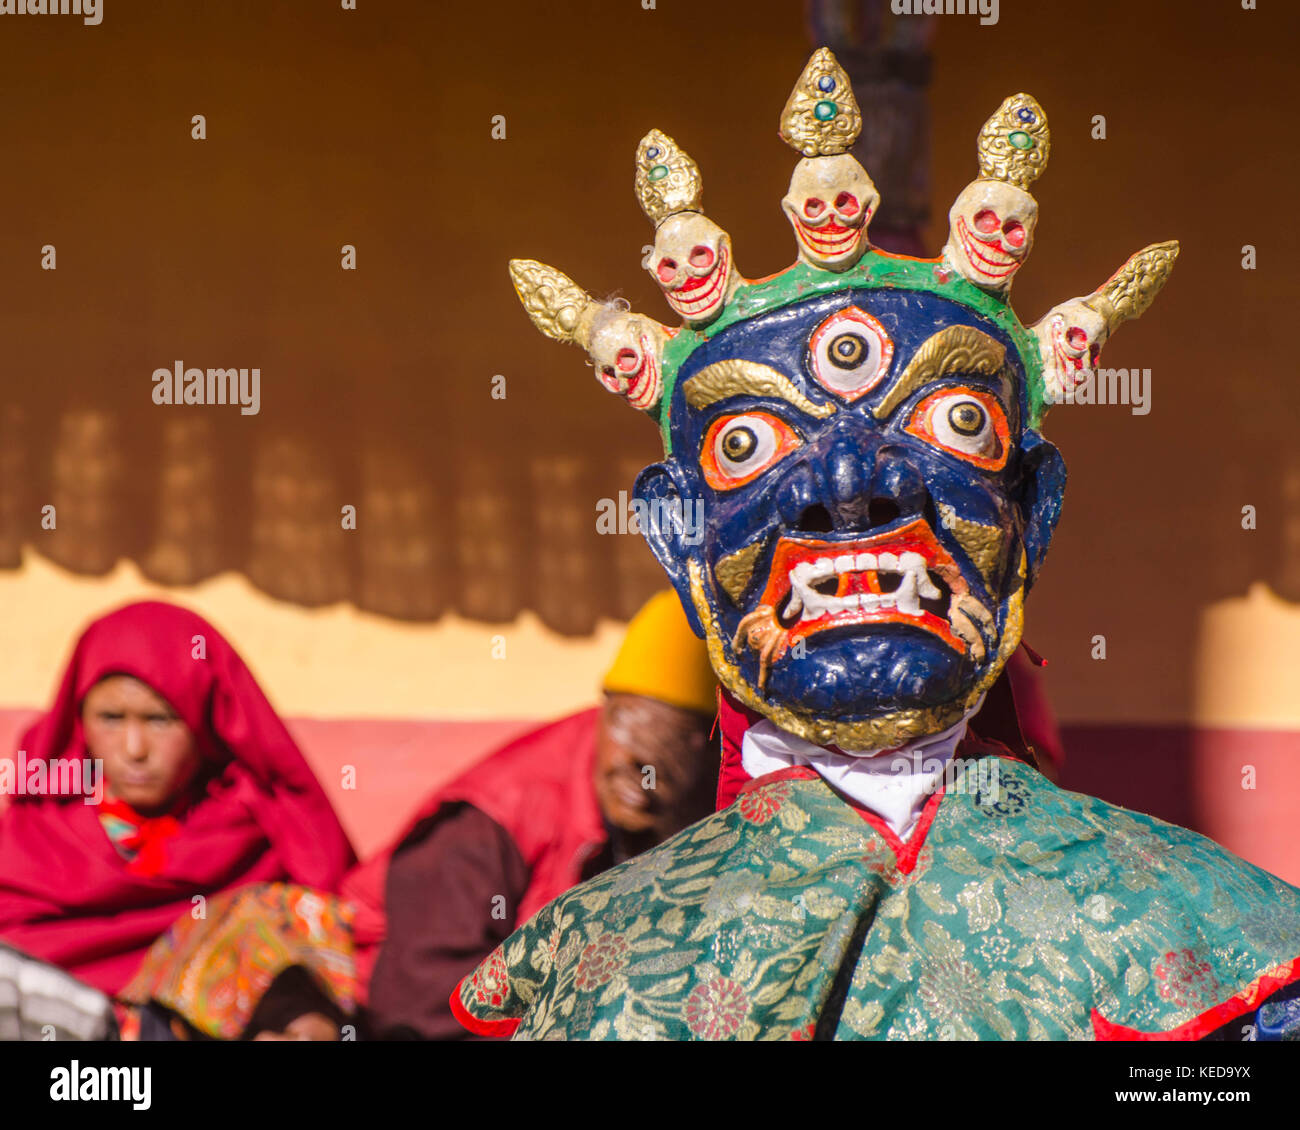 Ladakh, Northern India. Travel, culture and scenery in Ladakh during winter months. - Stock Image